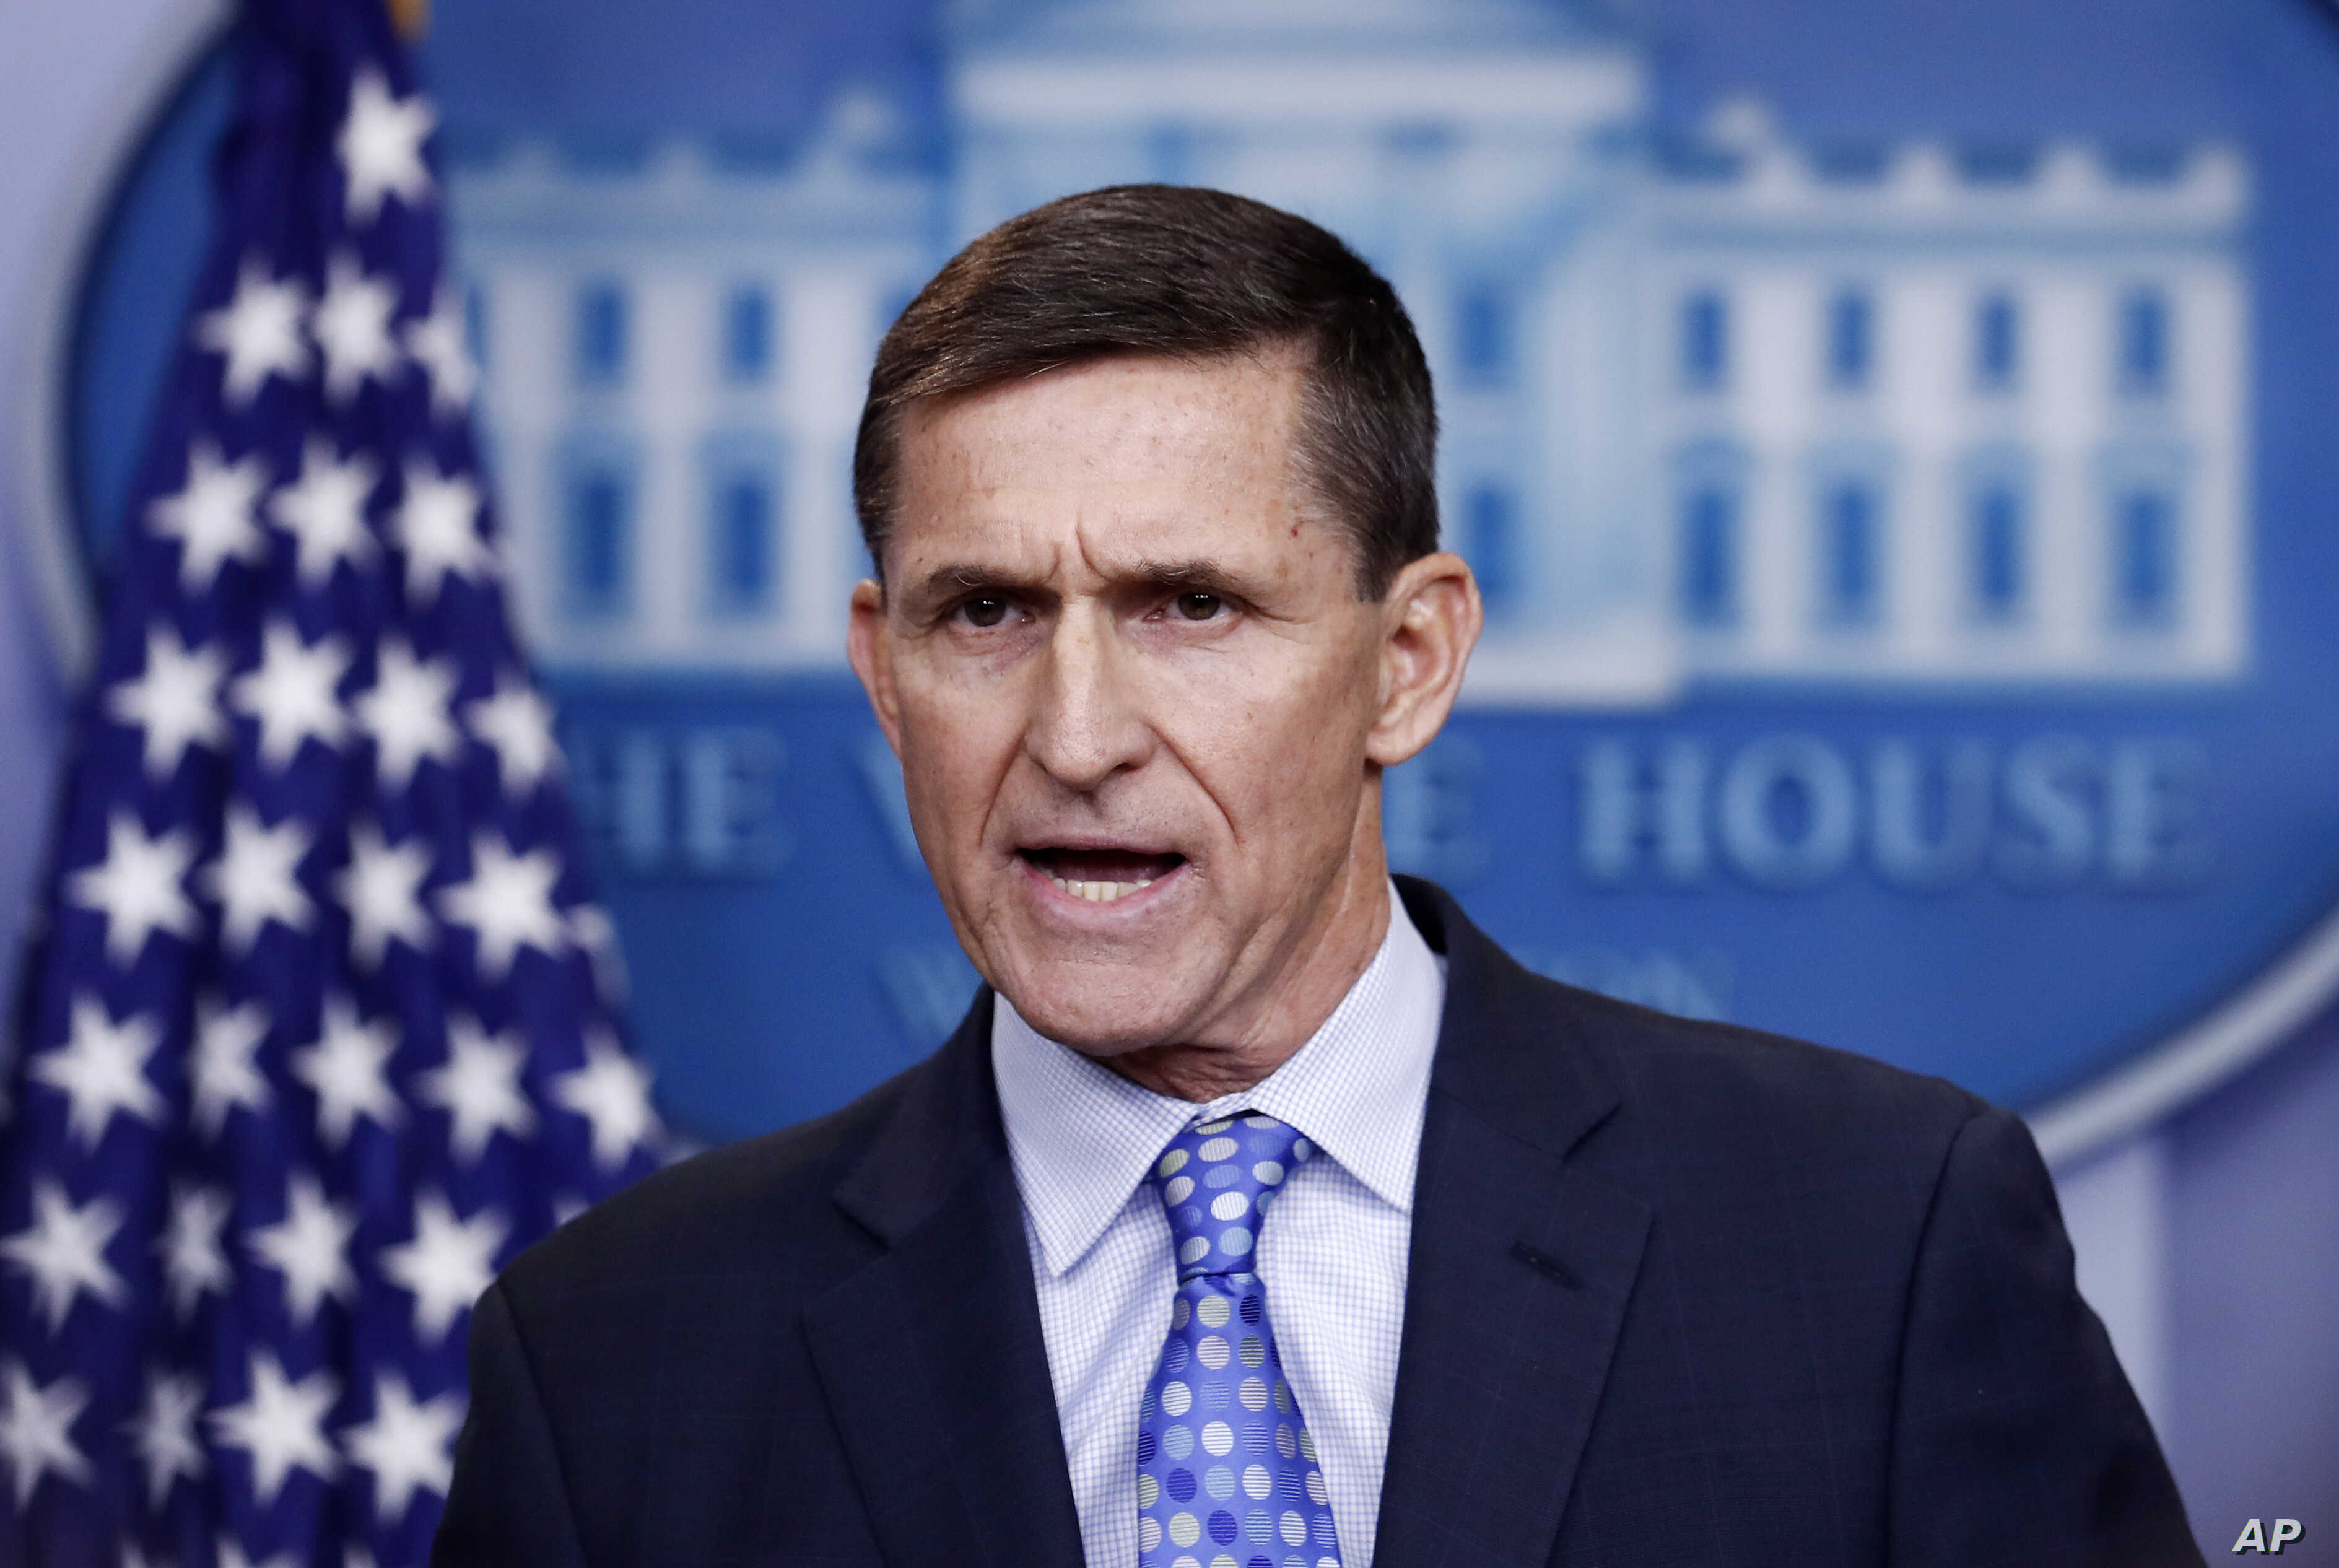 National Security Adviser Michael Flynn speaks during the daily news briefing at the White House, in Washington, Feb. 1, 2017.